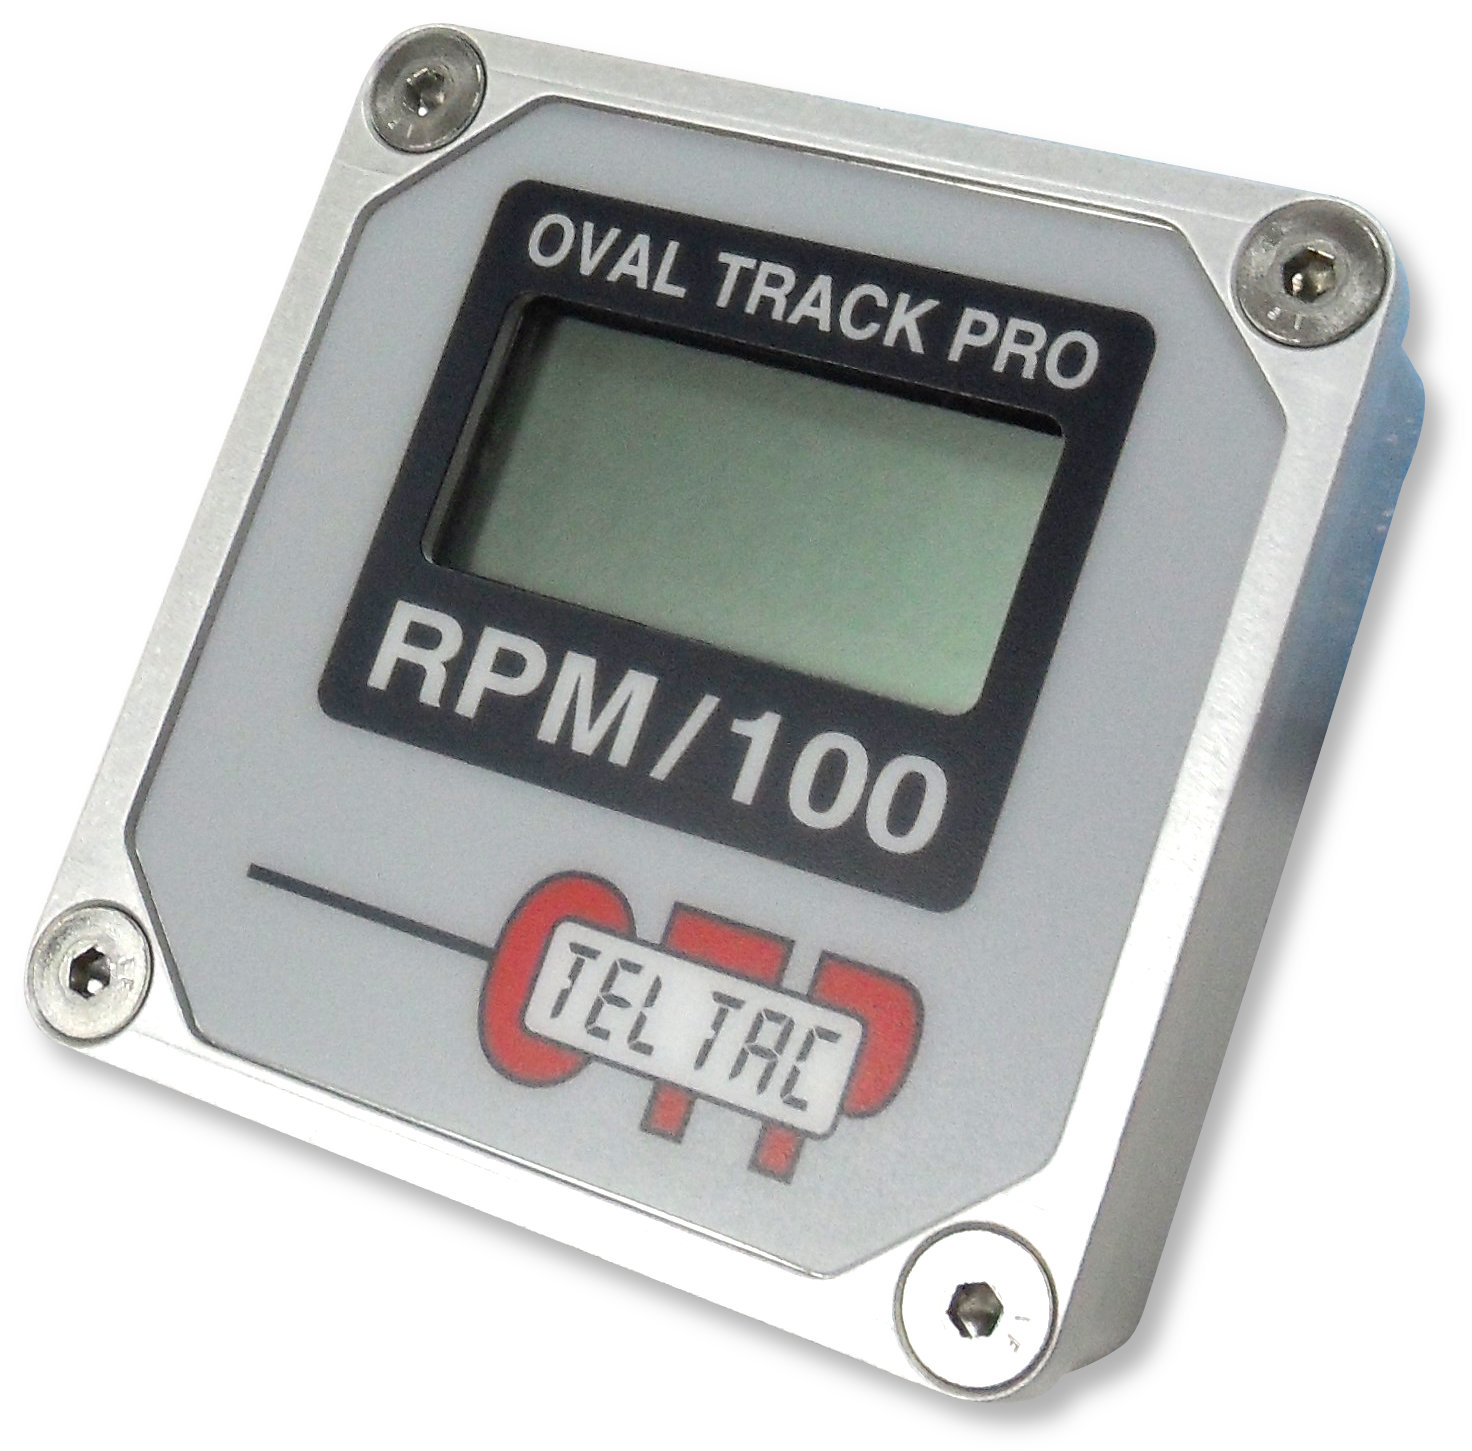 [NRIO_4796]   EV_5635] Tachometer Wiring Diagram Pro Get Free Image About Wiring Diagram | Oval Track Pro Tach Wiring |  | Over Peted Redne Animo Isra Mohammedshrine Librar Wiring 101